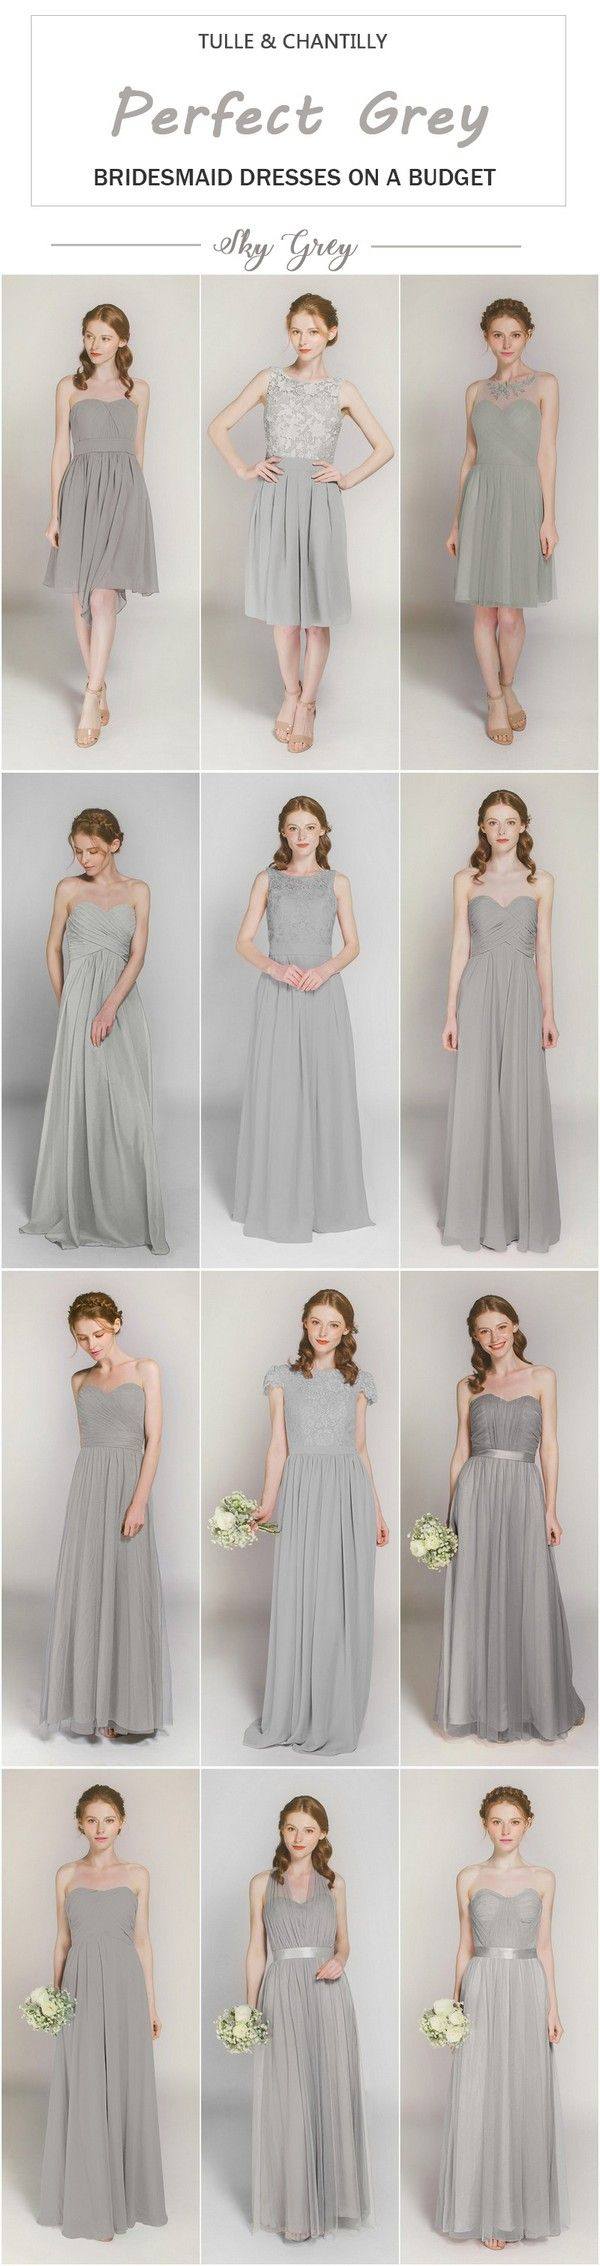 25 swoon worthy spring amp summer wedding bouquets tulle amp chantilly - Gray Bridesmaid Dresses Affordable Custom Silver Gowns